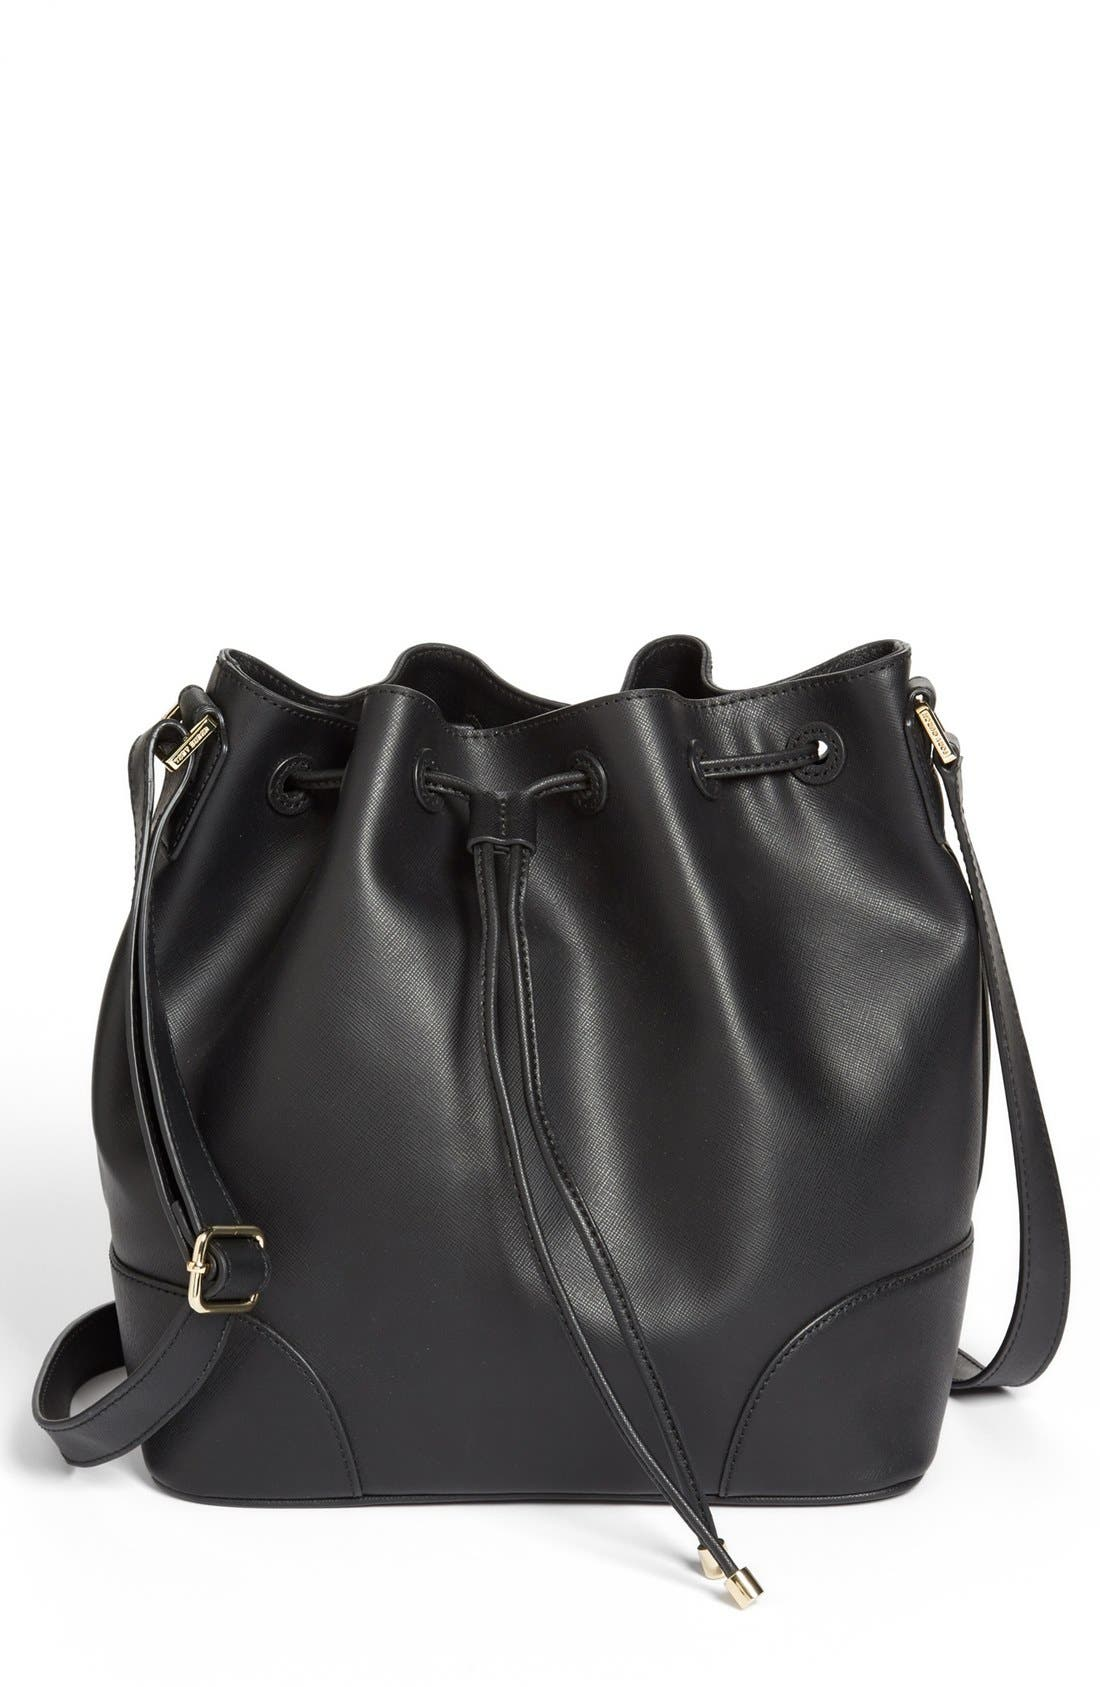 'Robinson' Drawstring Bucket Bag,                         Main,                         color, 001